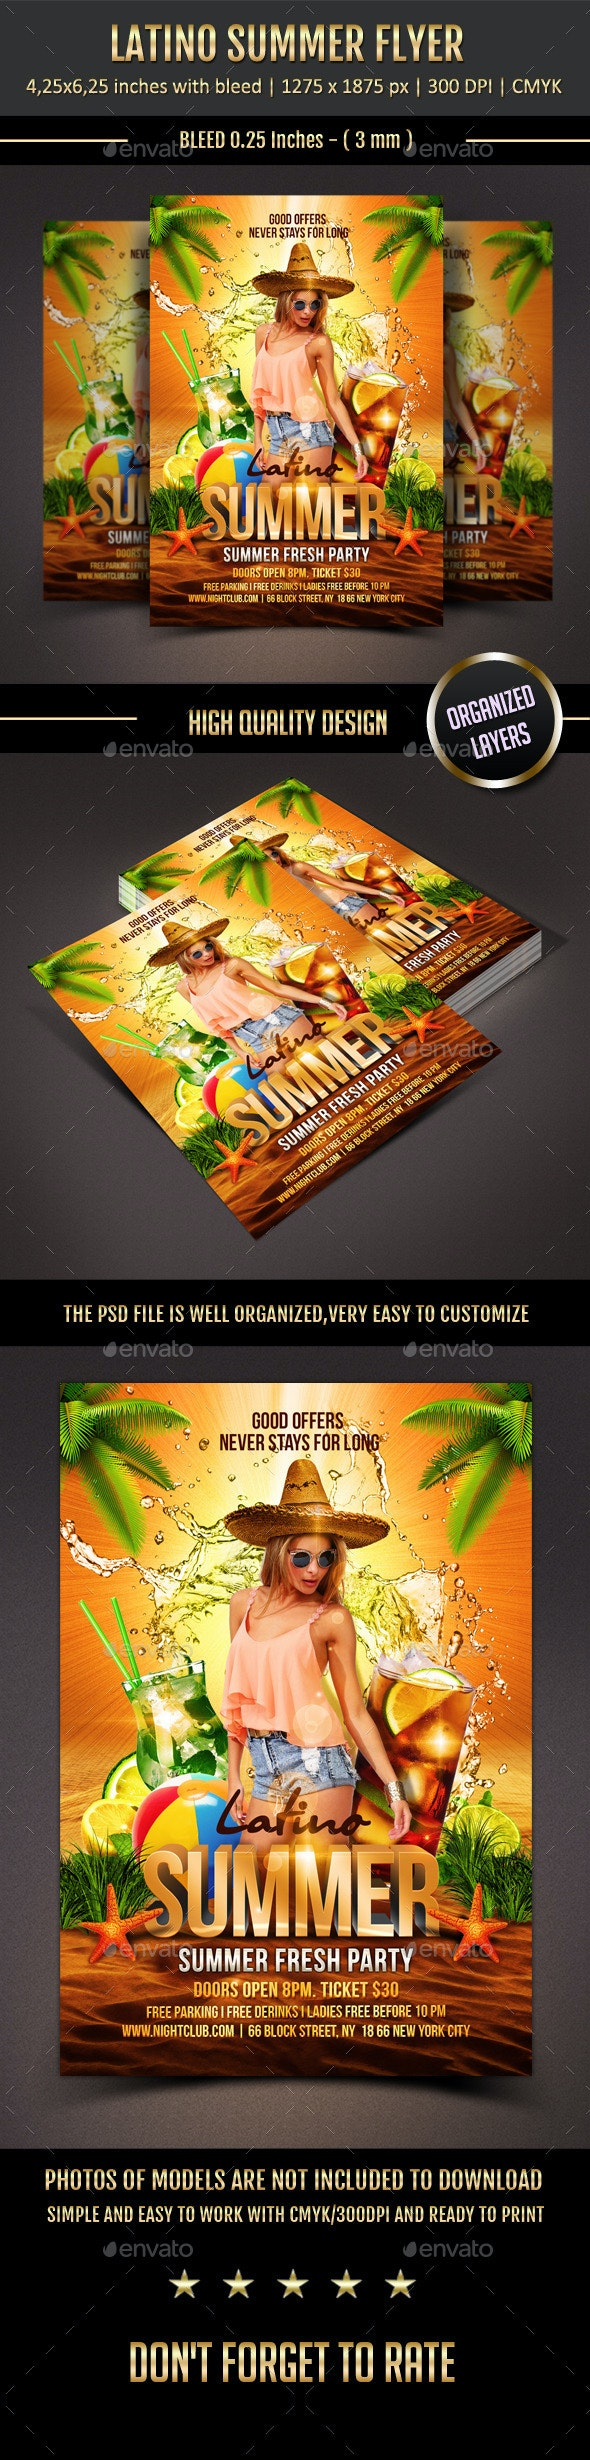 Latino Summer Flyer - Clubs & Parties Events